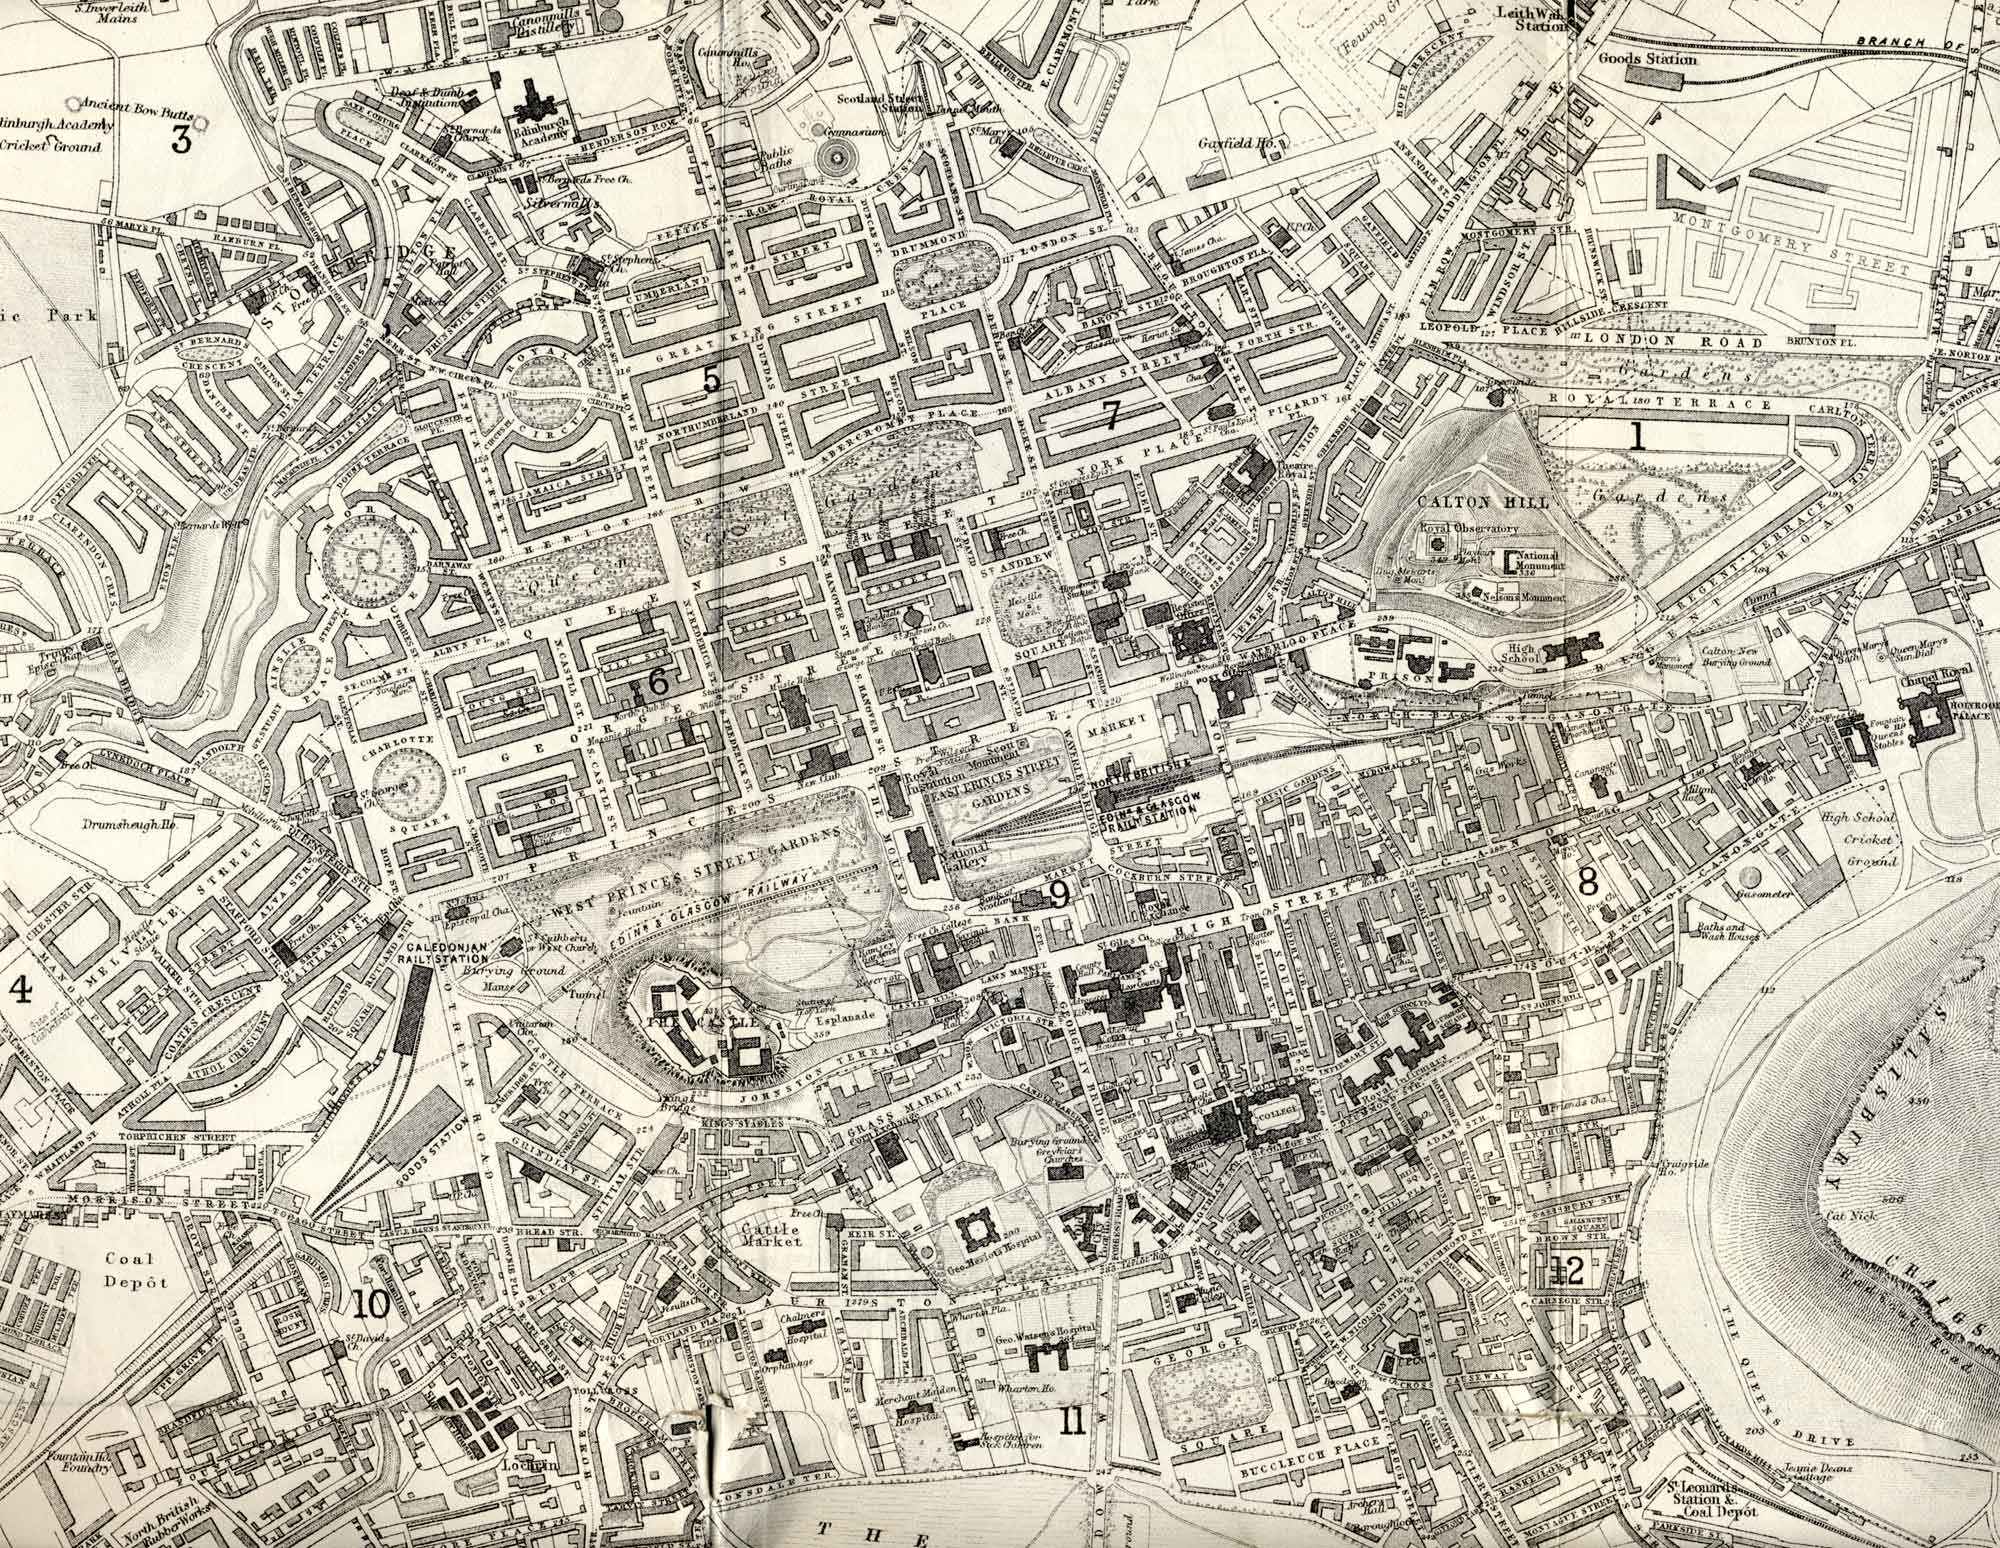 Edinburgh map 1870 enlarged